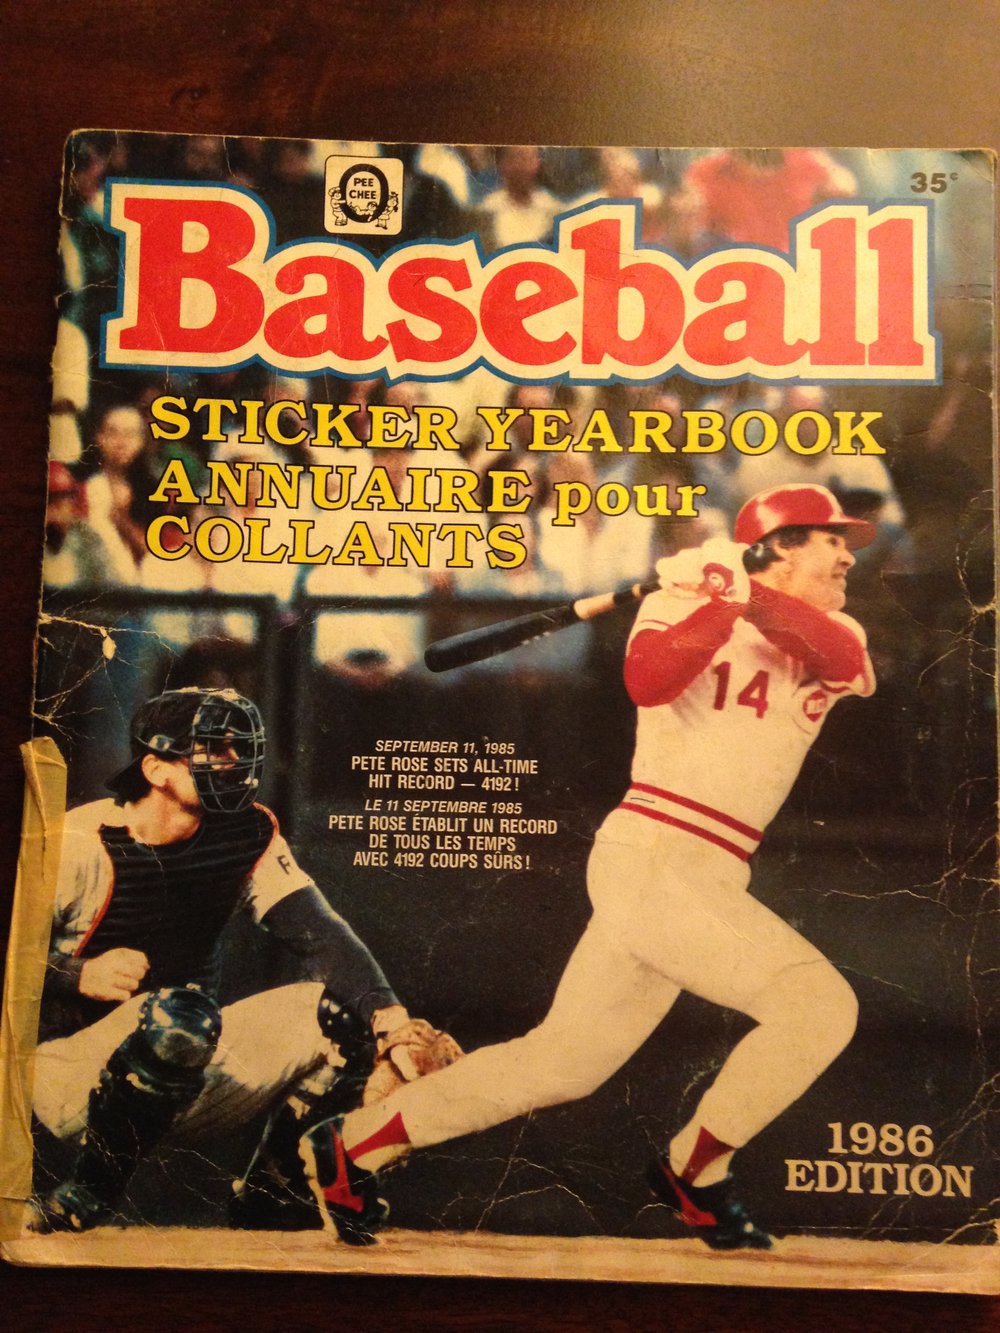 My 1986 Baseball Sticker Yearbook, recapping the 1985 Baseball Season (front cover)